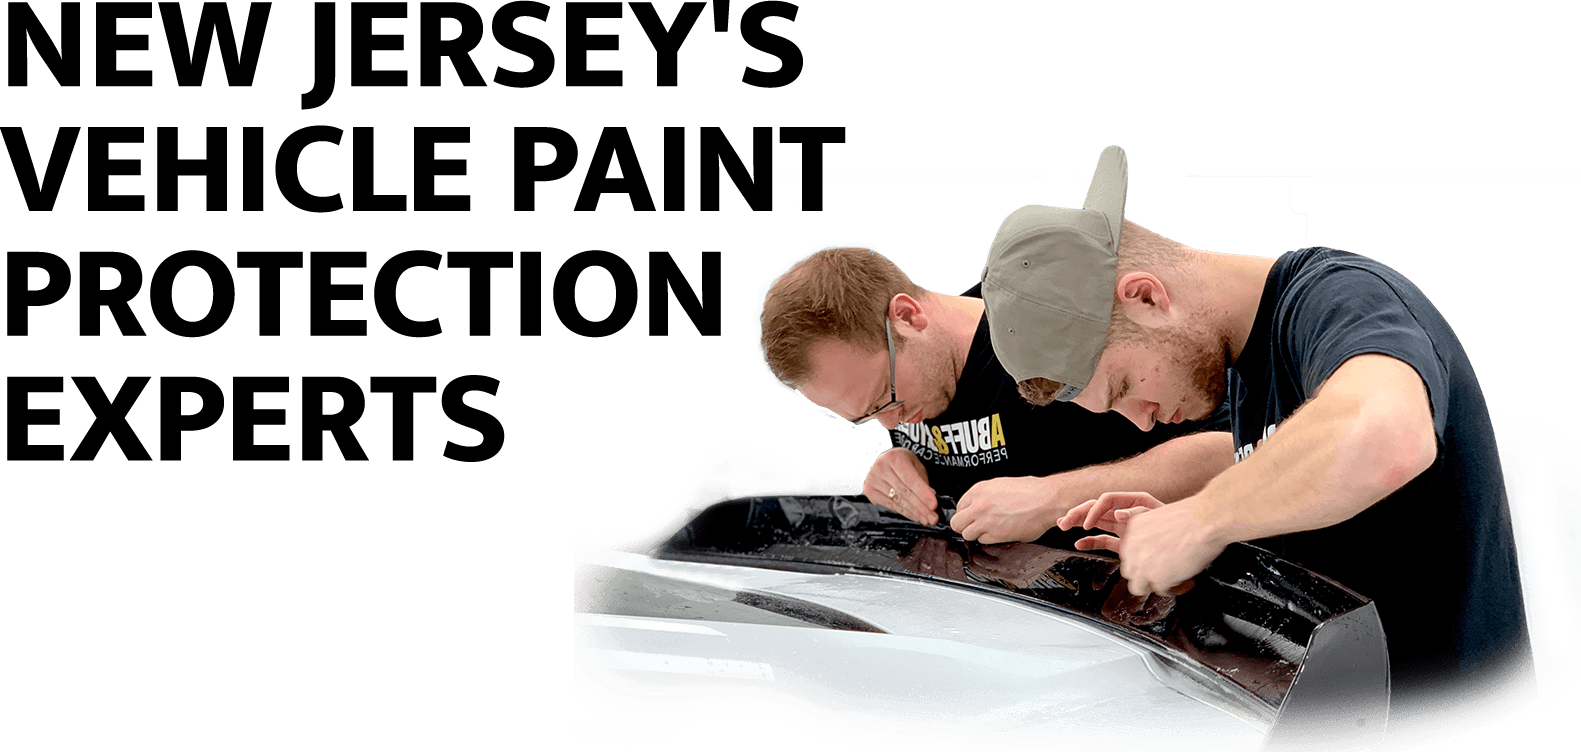 New Jersey's Vehicle Paint Protection Experts